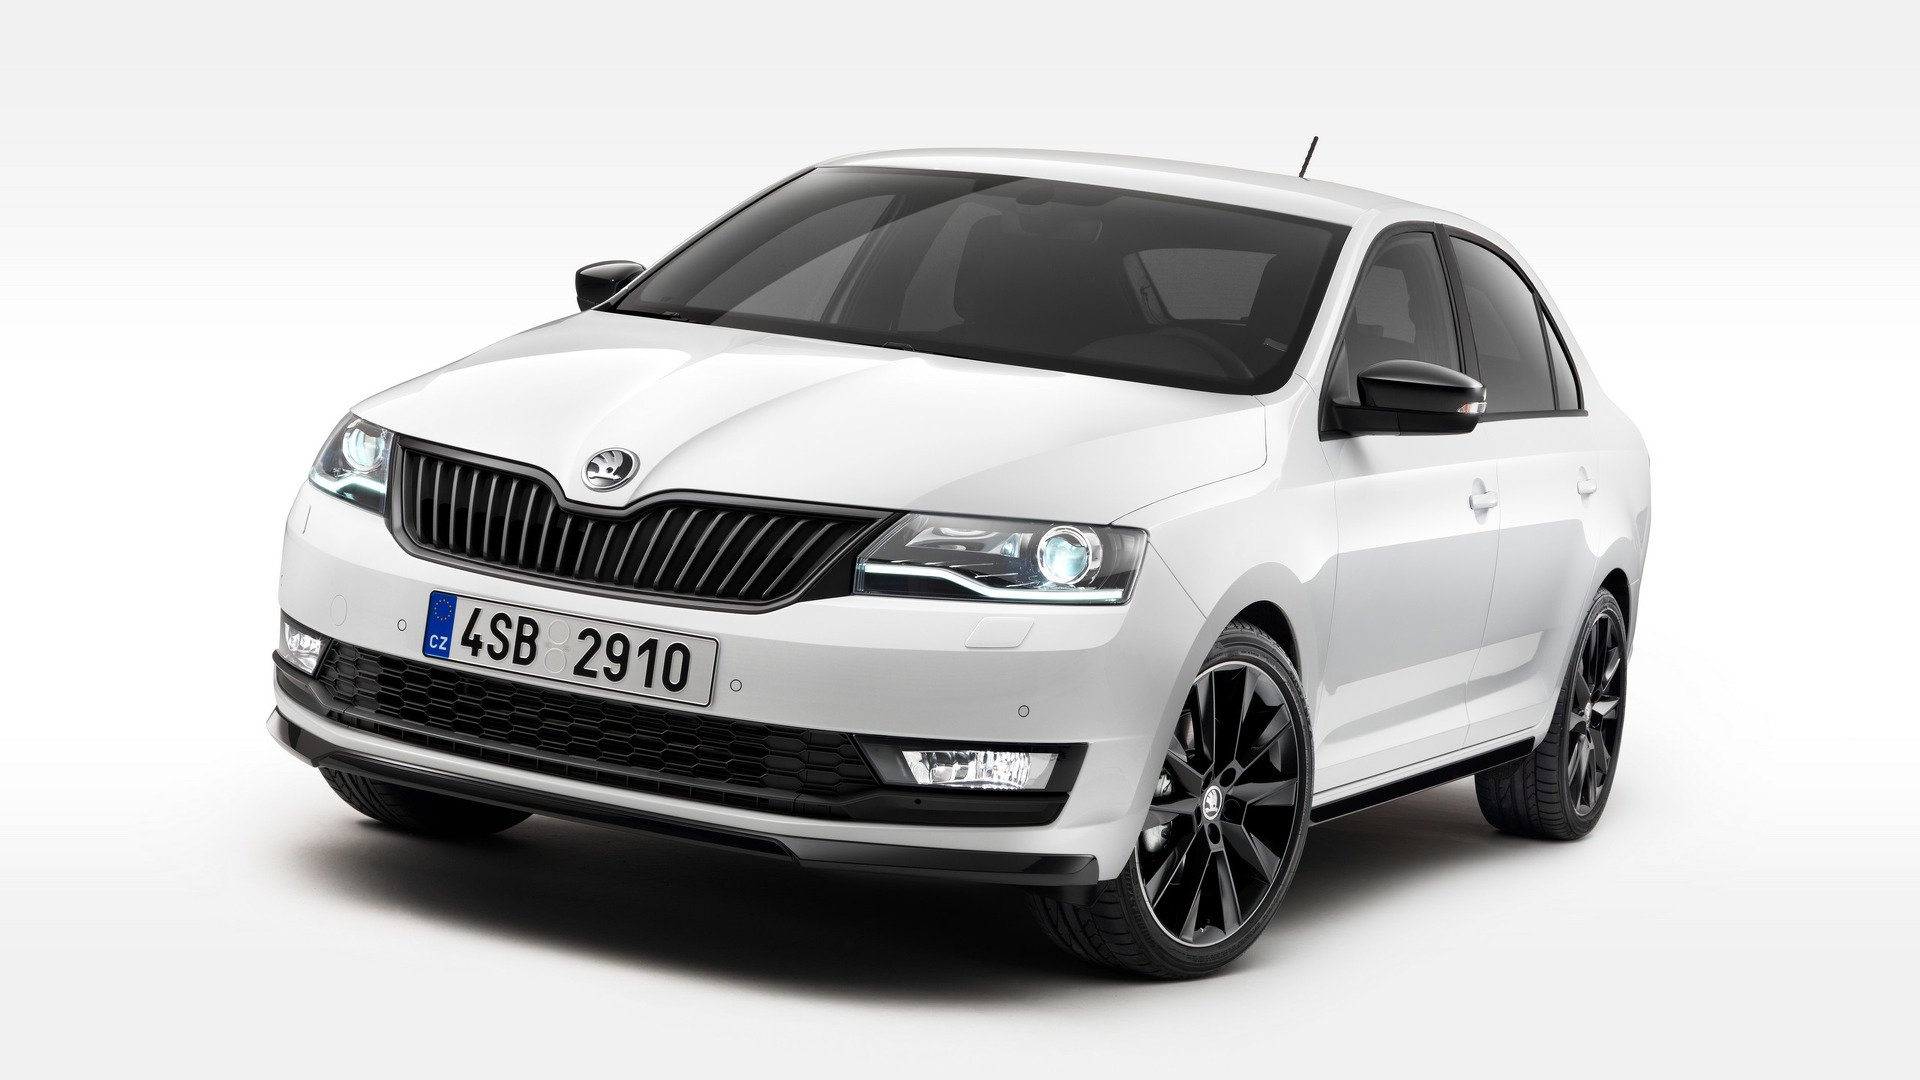 2017 Skoda Rapid facelifting